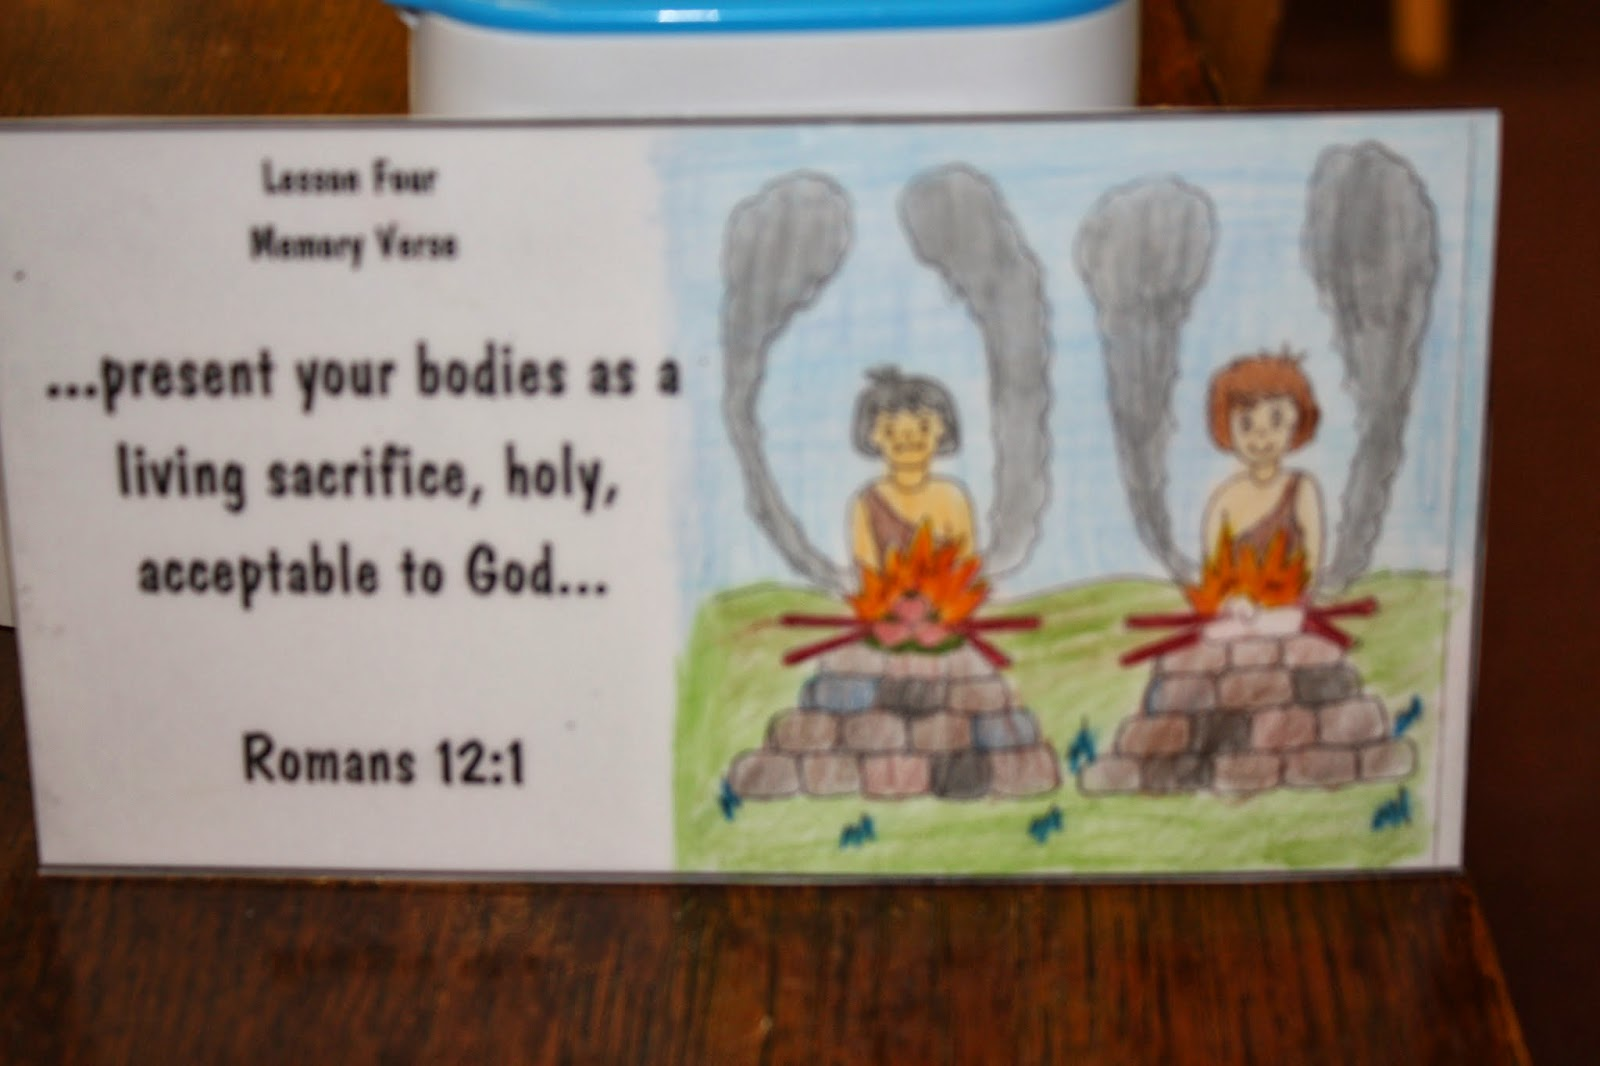 Cain and abel craft ideas - I Want The Kiddos To Understand That God Wants Our Best And We Must Give Him No Less